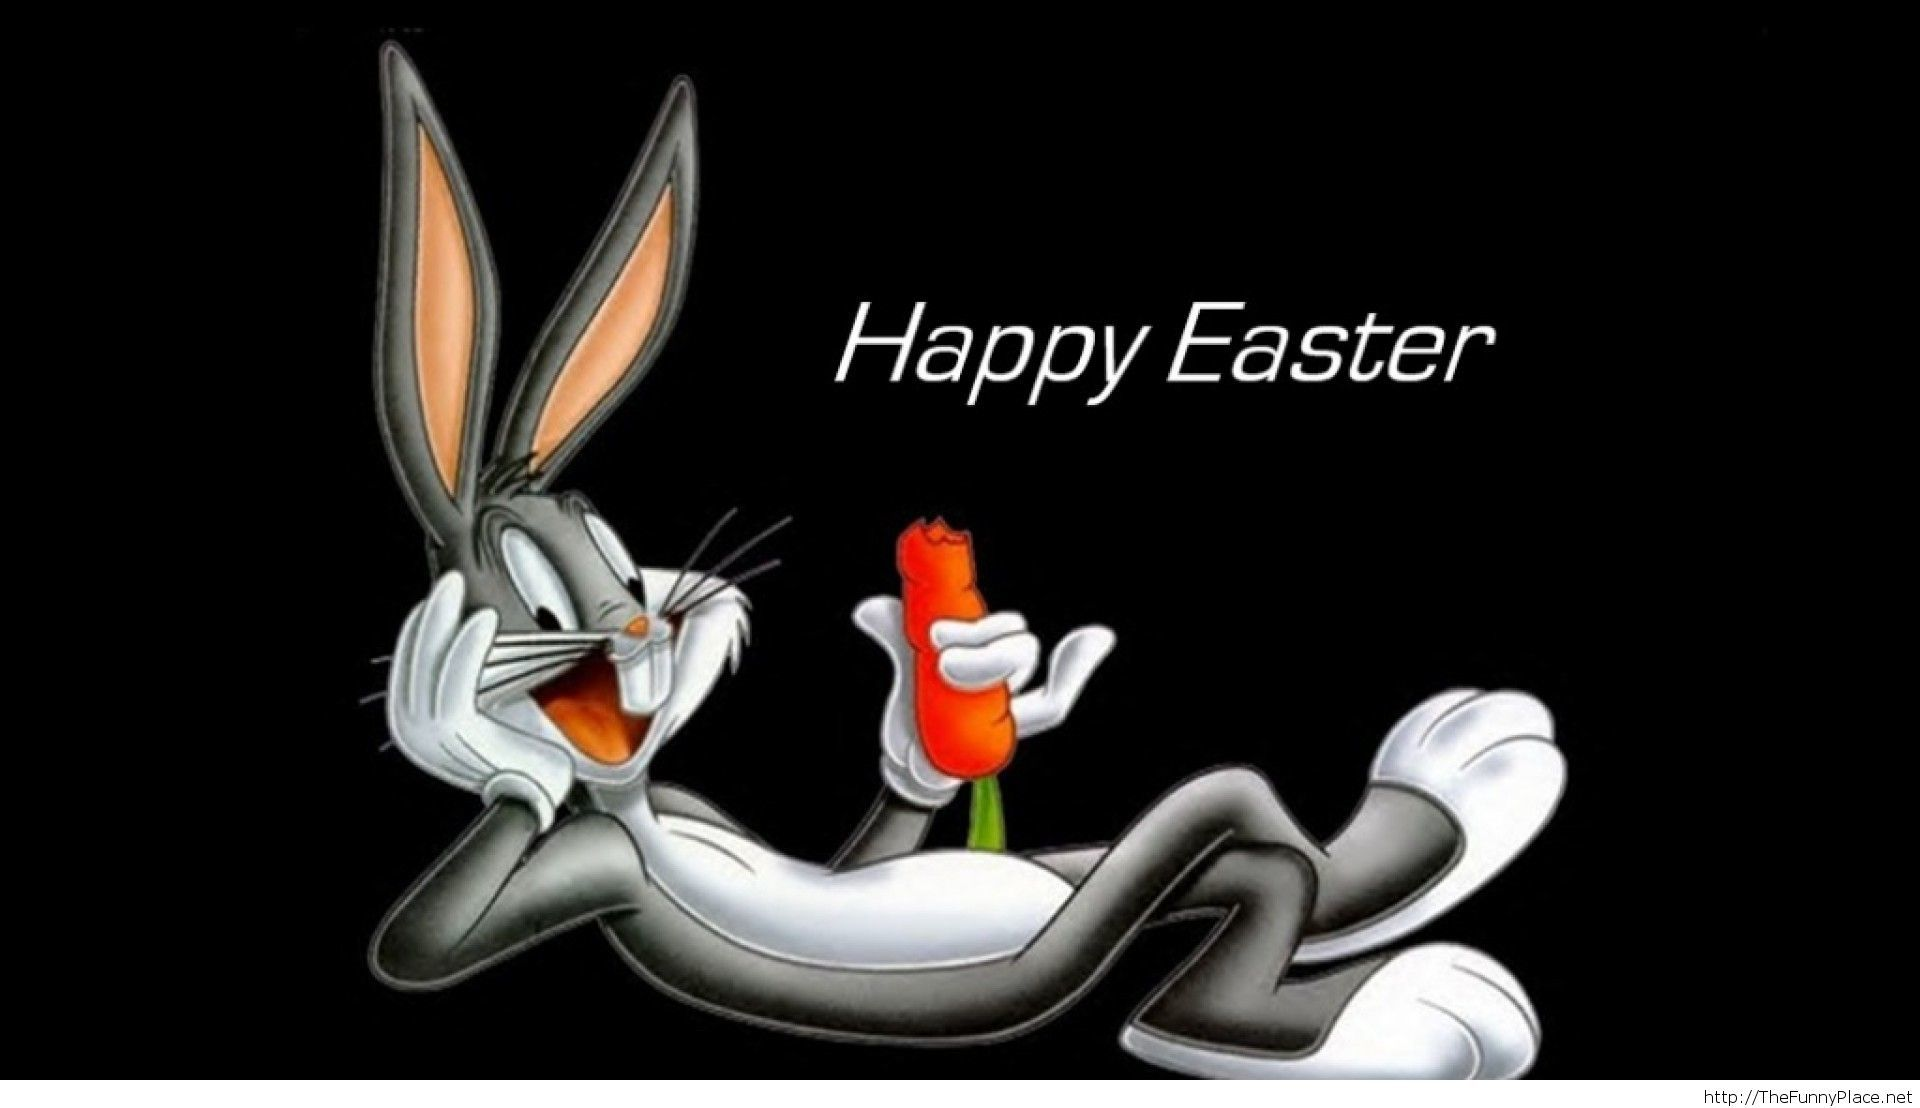 Bugs Bunny picture Happy Easter